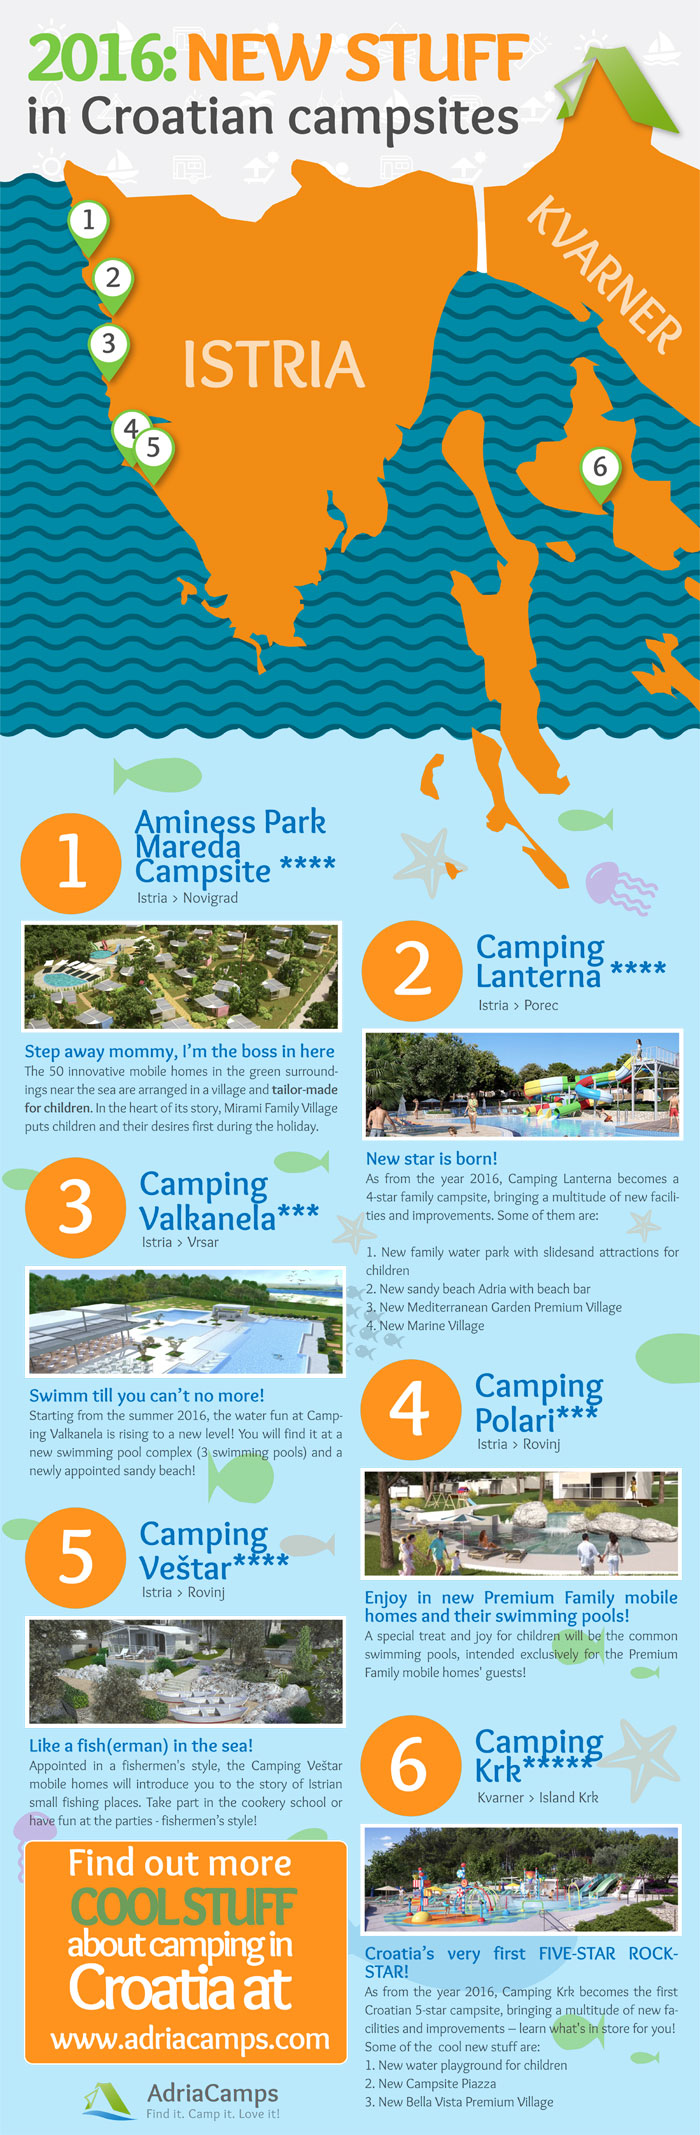 Infographic - new stuff in croatian campsites in 2016.